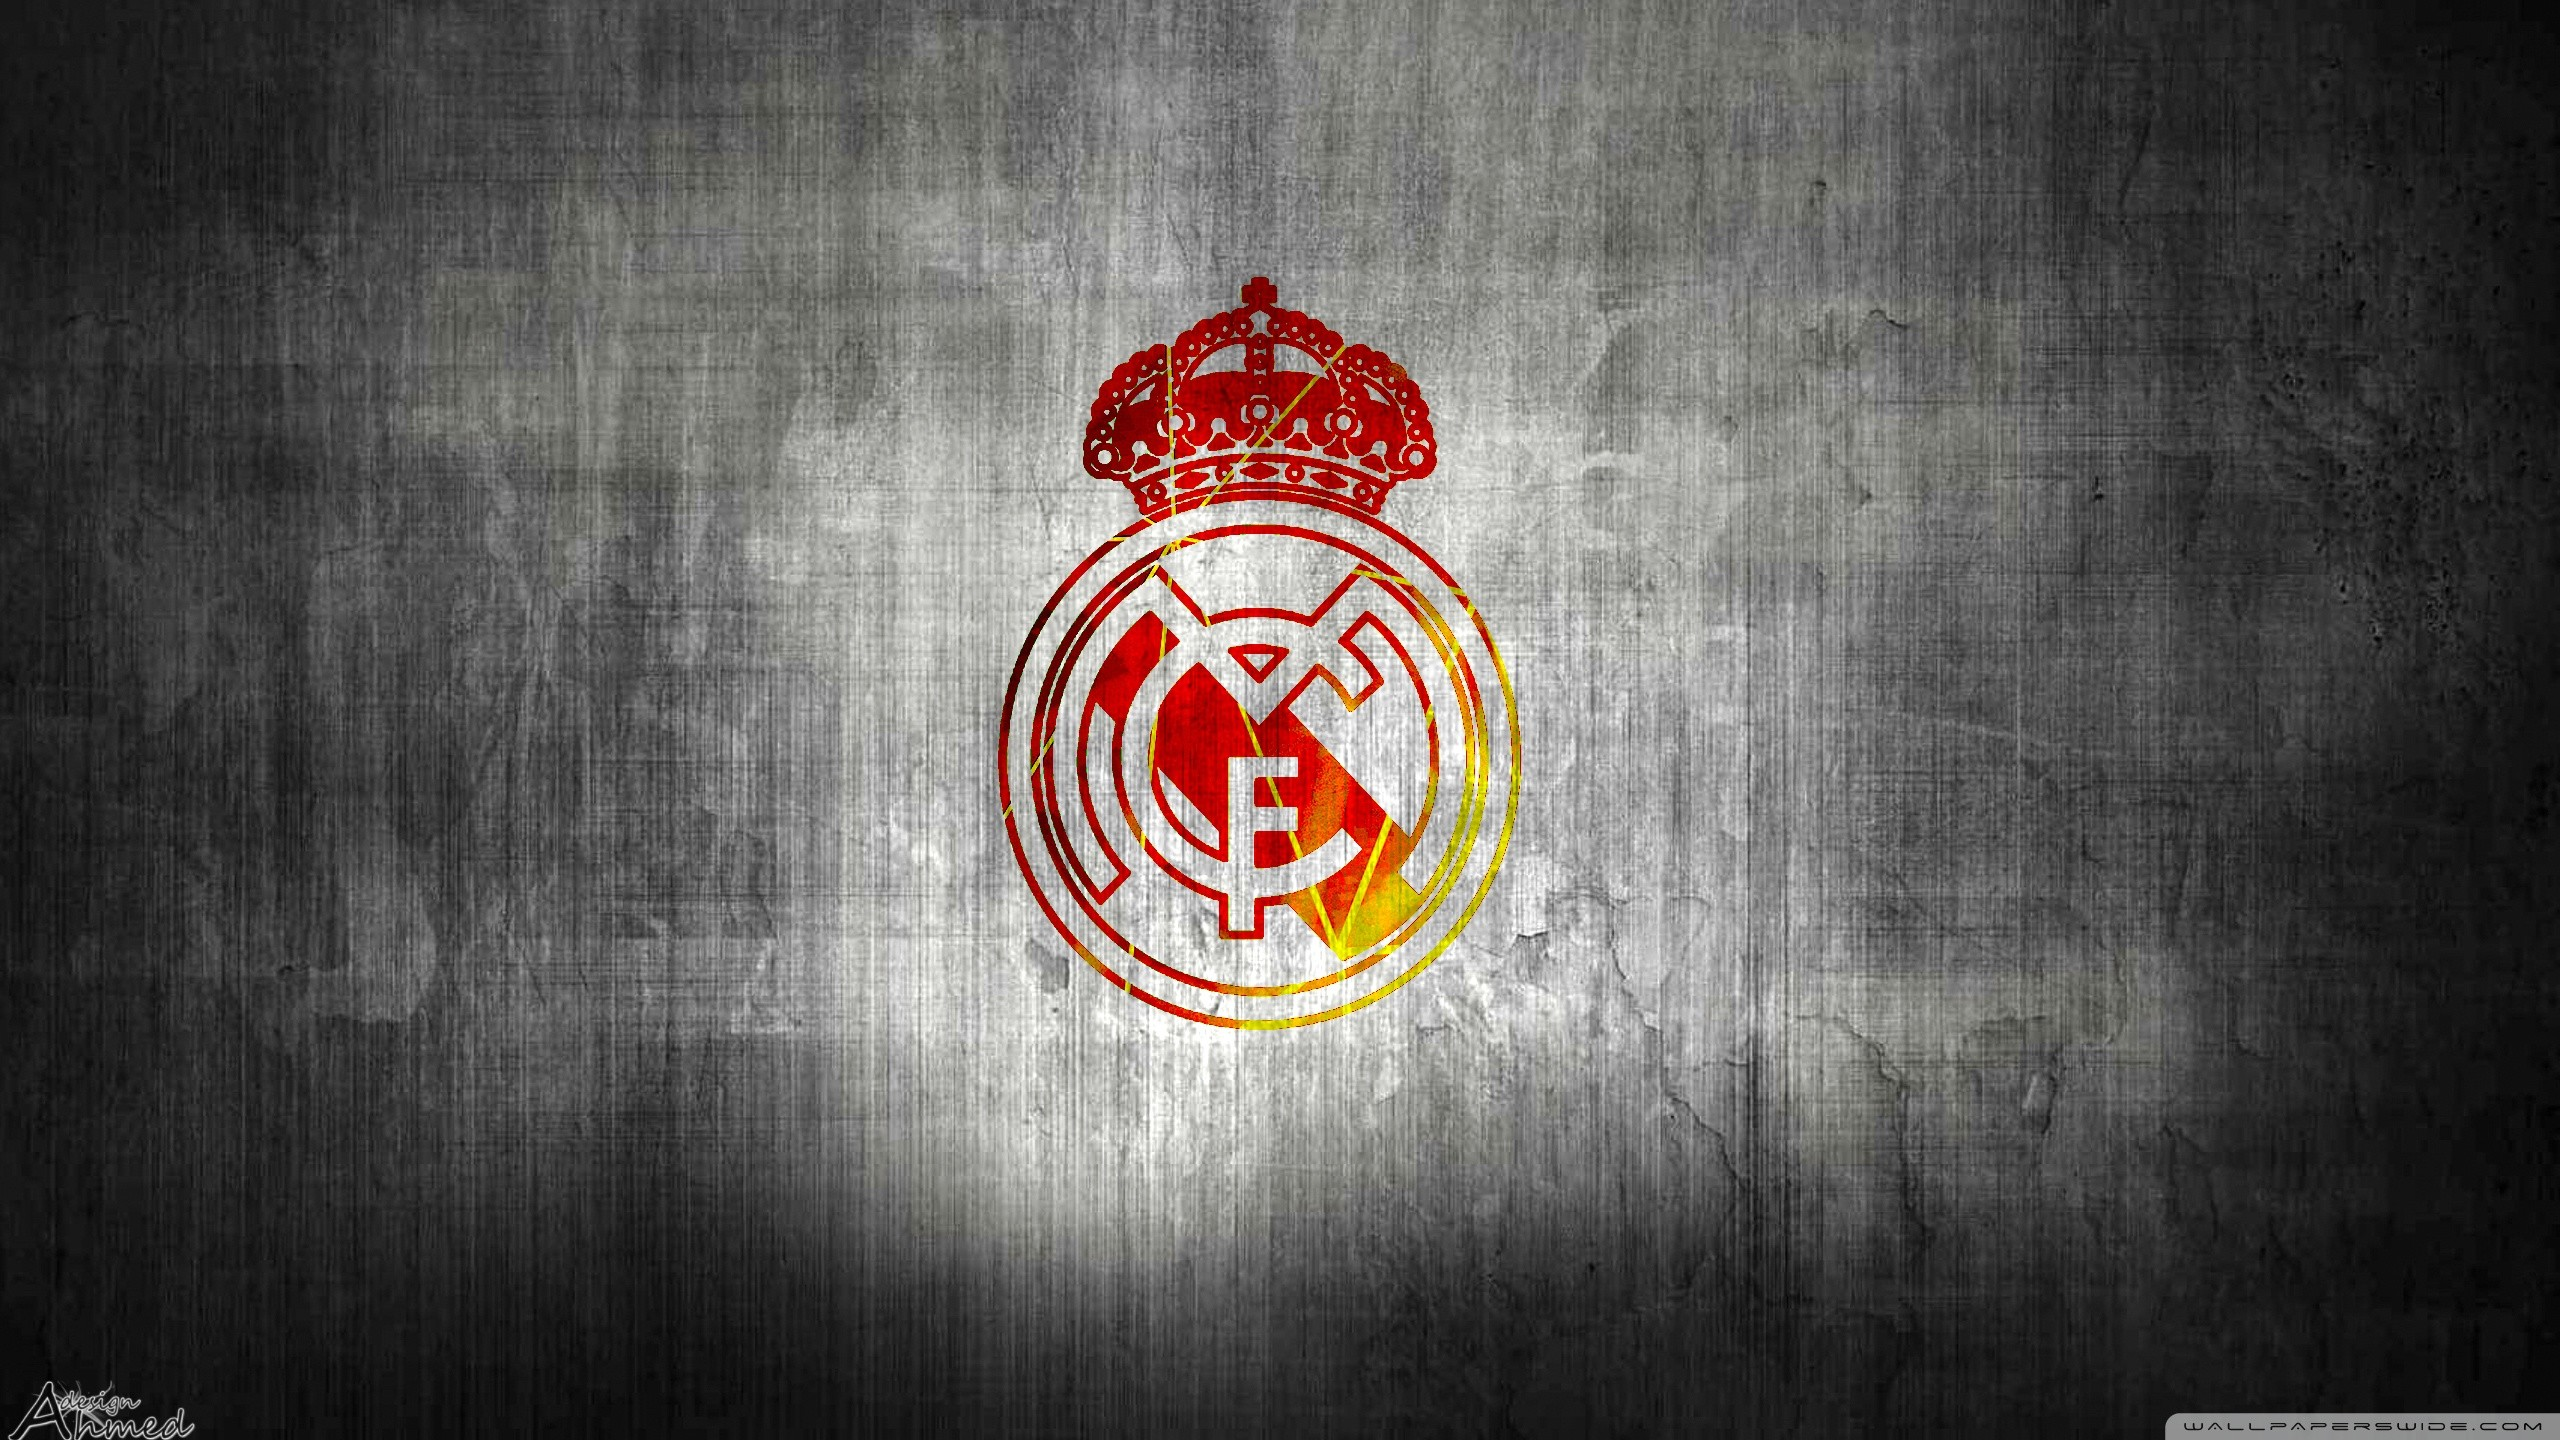 Real madrid 2018 wallpaper 3d 61 pictures real madrid logo black wallpaper hd realmadridwallpapers1920x1080hd35greenbackground 1920x1080 voltagebd Gallery